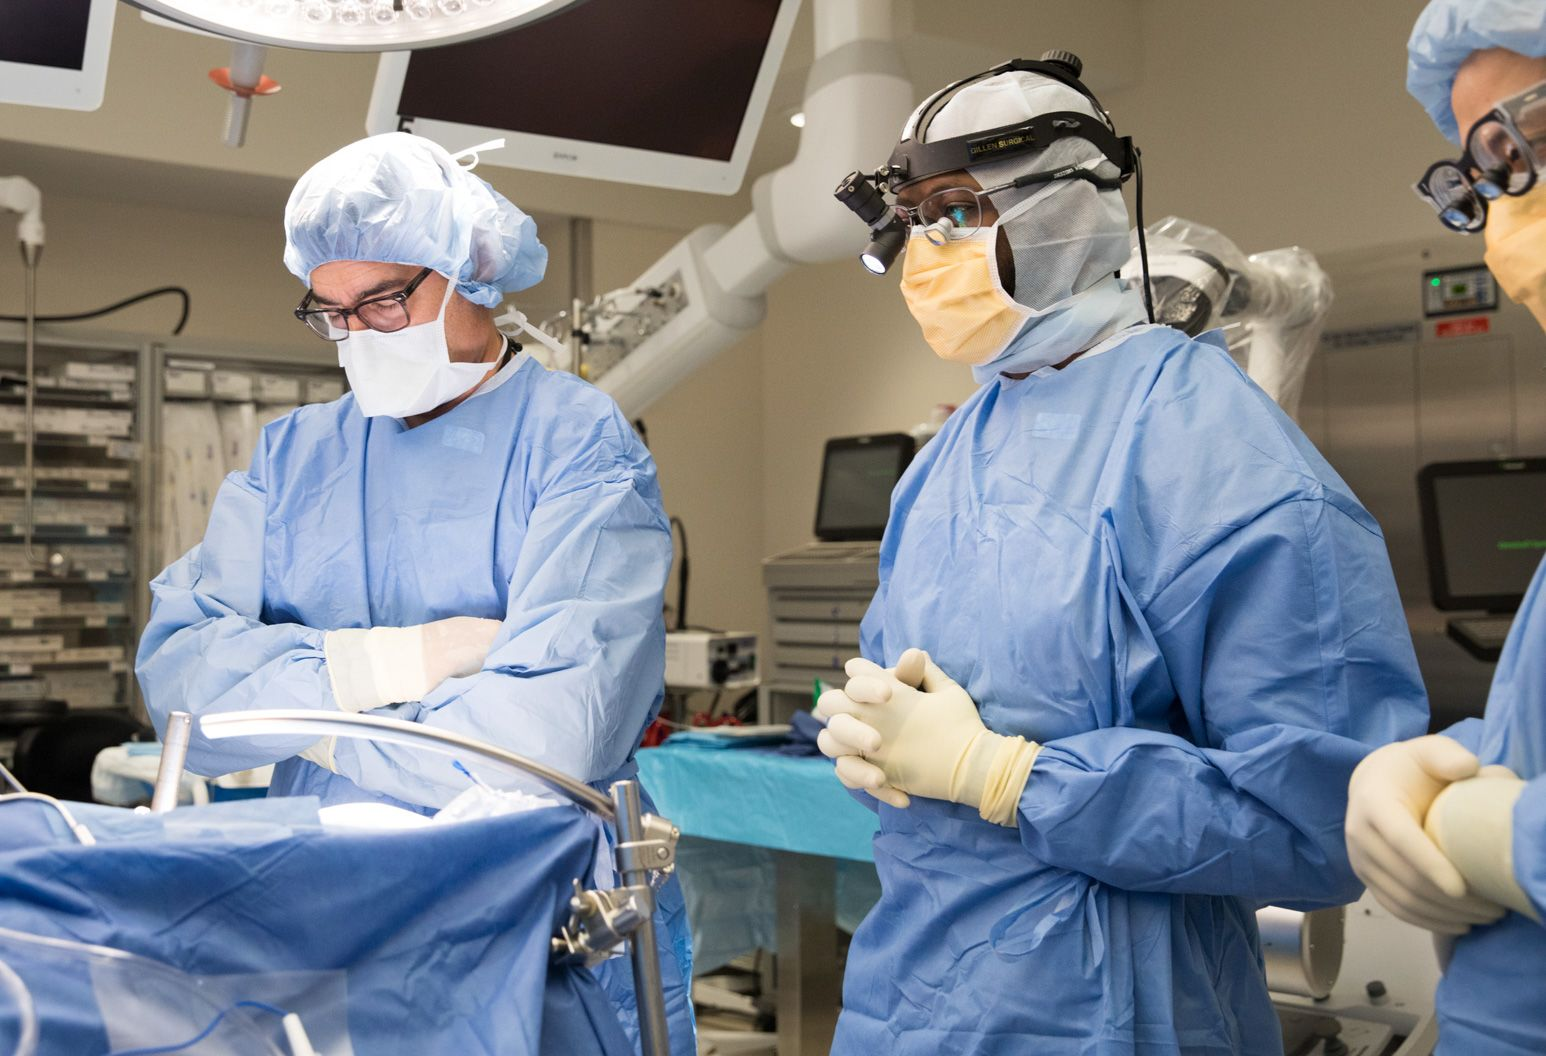 A team of doctors dressed in blue scrubs prepare for surgery in an operating room. Bright lights are overhead and a surgical table is in the middle of the room.